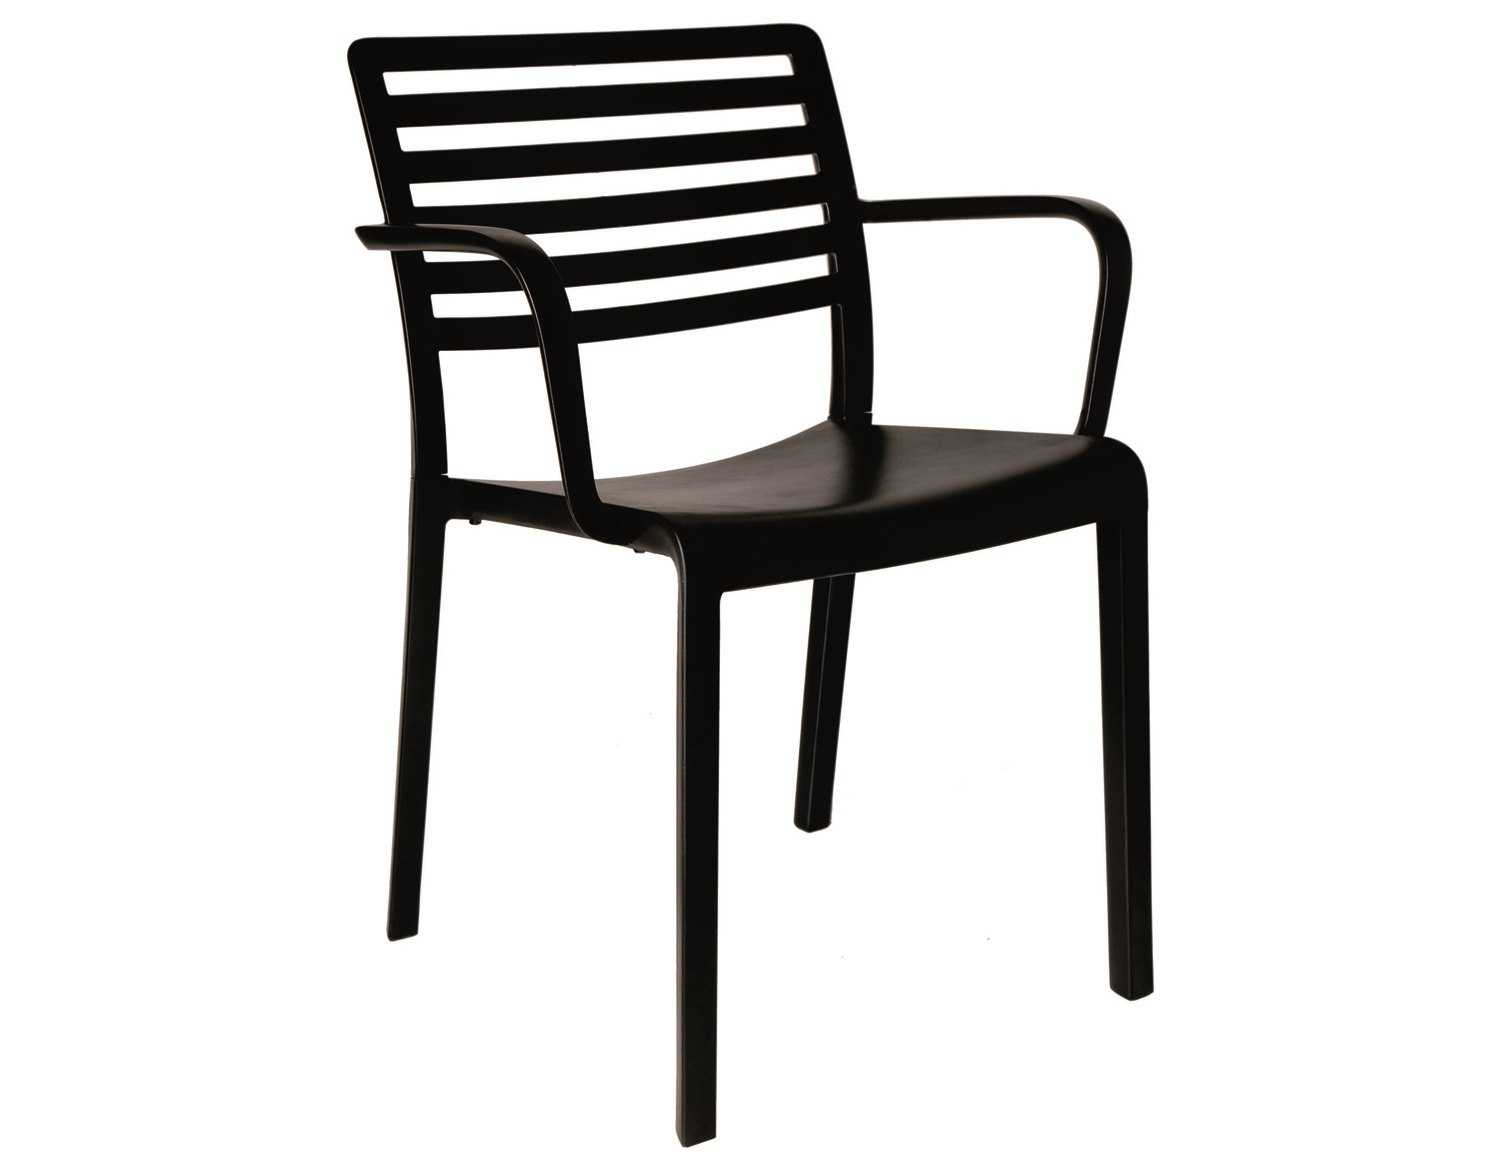 resol lama recycled plastic black arm chair 30535 zoom